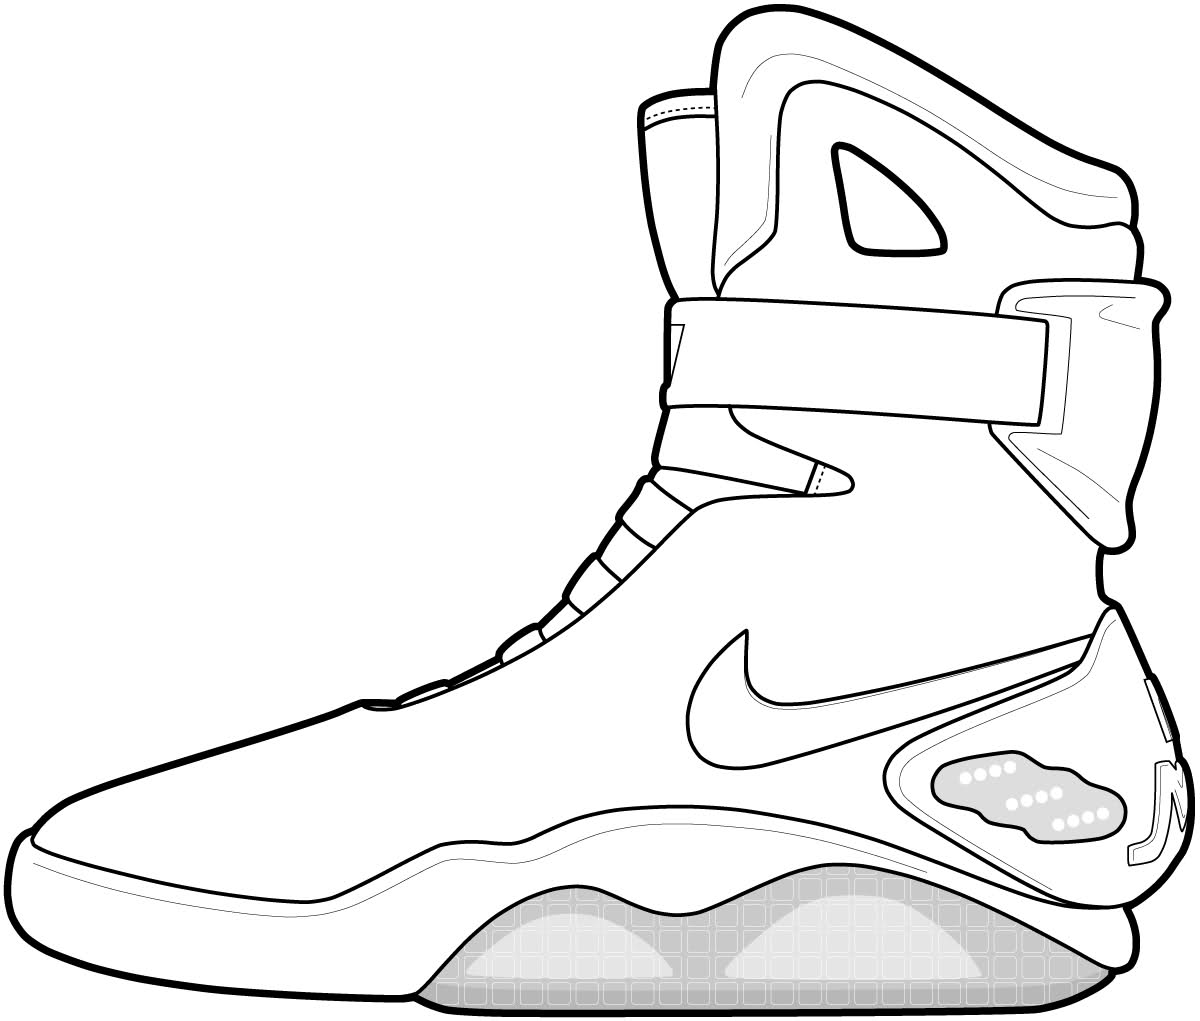 Basketball Shoe Coloring Pages on back to the future car 3